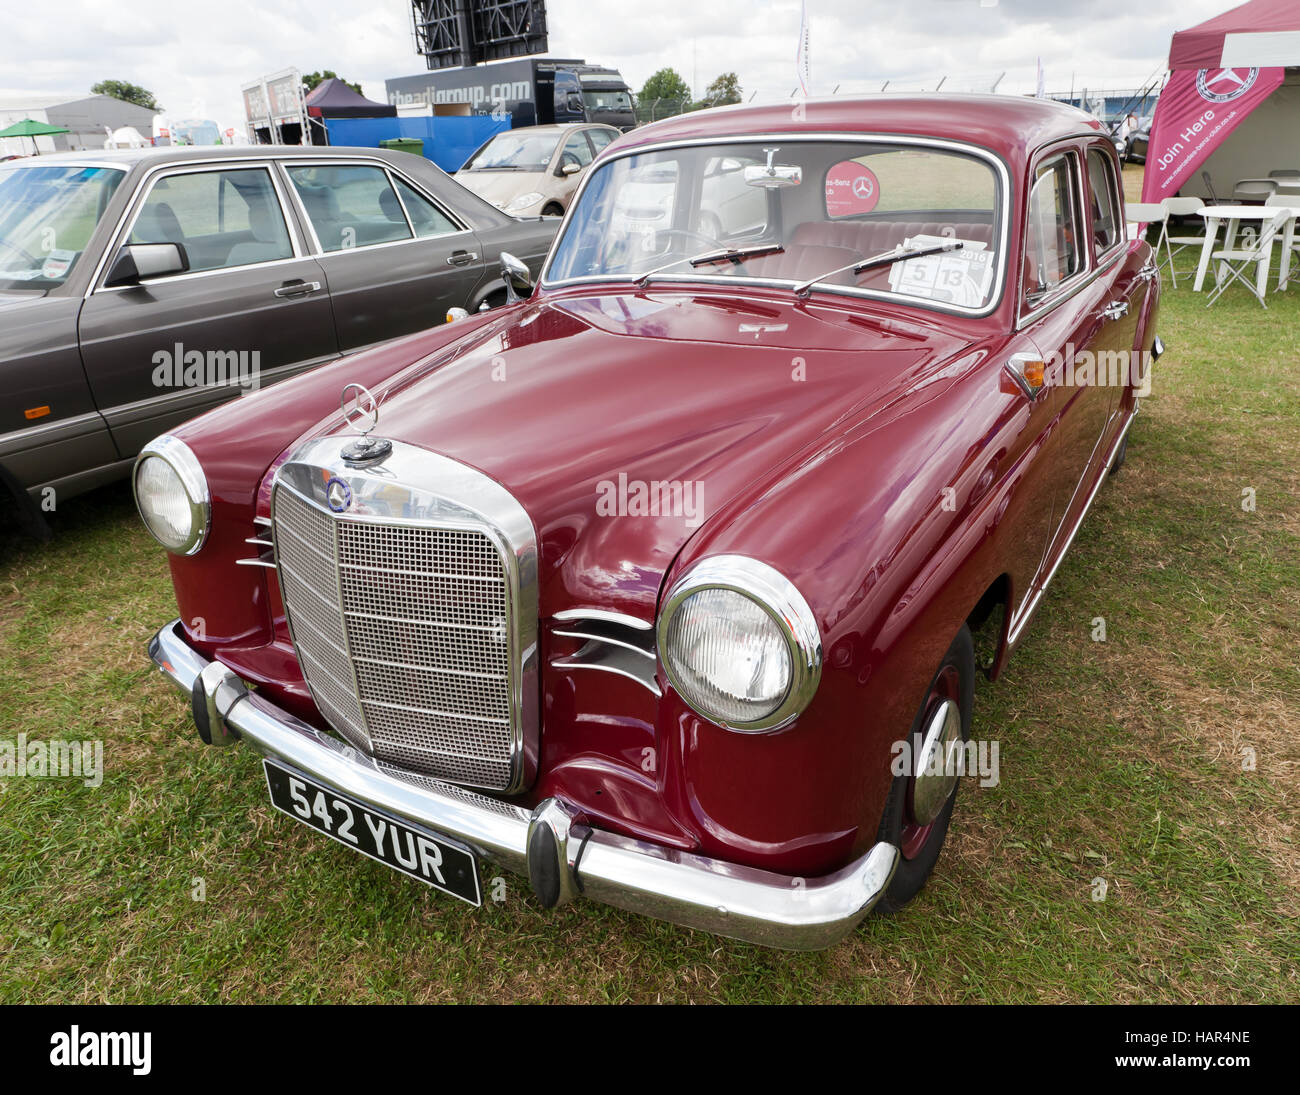 Three-quarter front view of a1961 Mercedes-Benz Ponton 190 Sedan on display at the Car Club Zone of the 2016 Silverstone - Stock Image